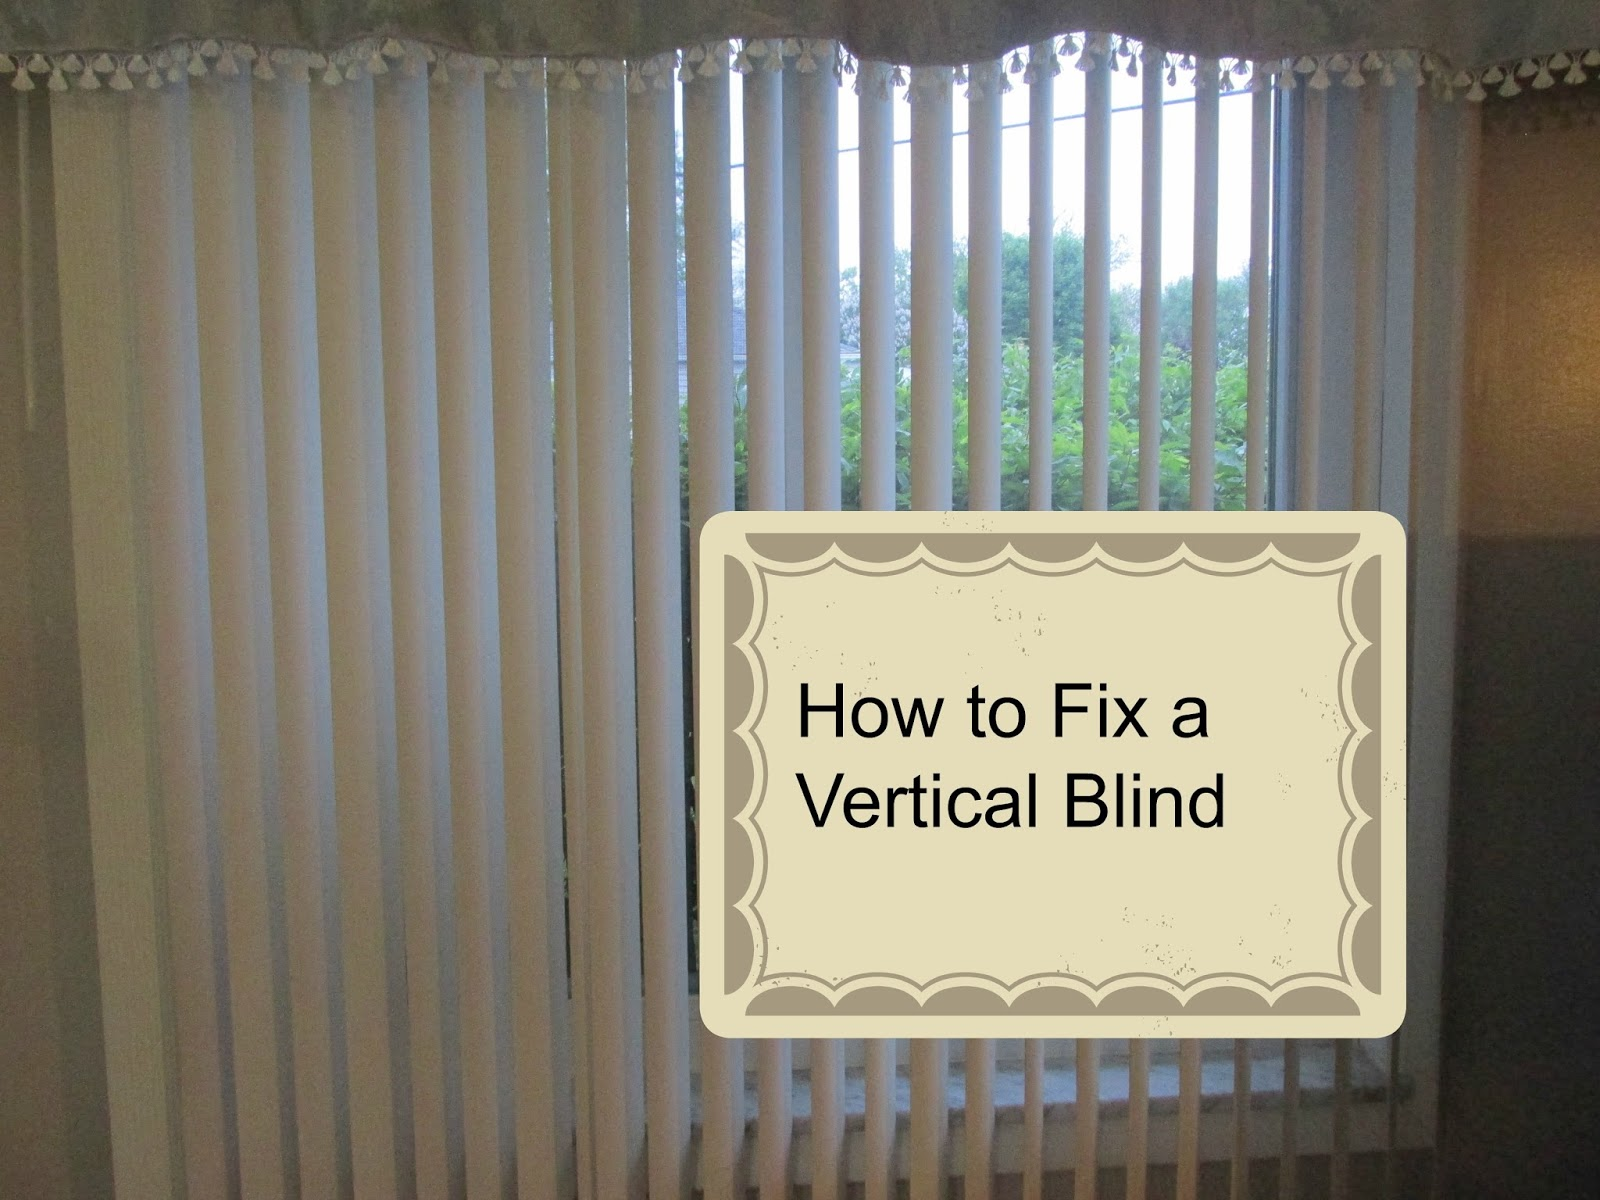 Diy Vertical Blinds Vickie 39s Kitchen And Garden Diy How To Fix A Vertical Blind